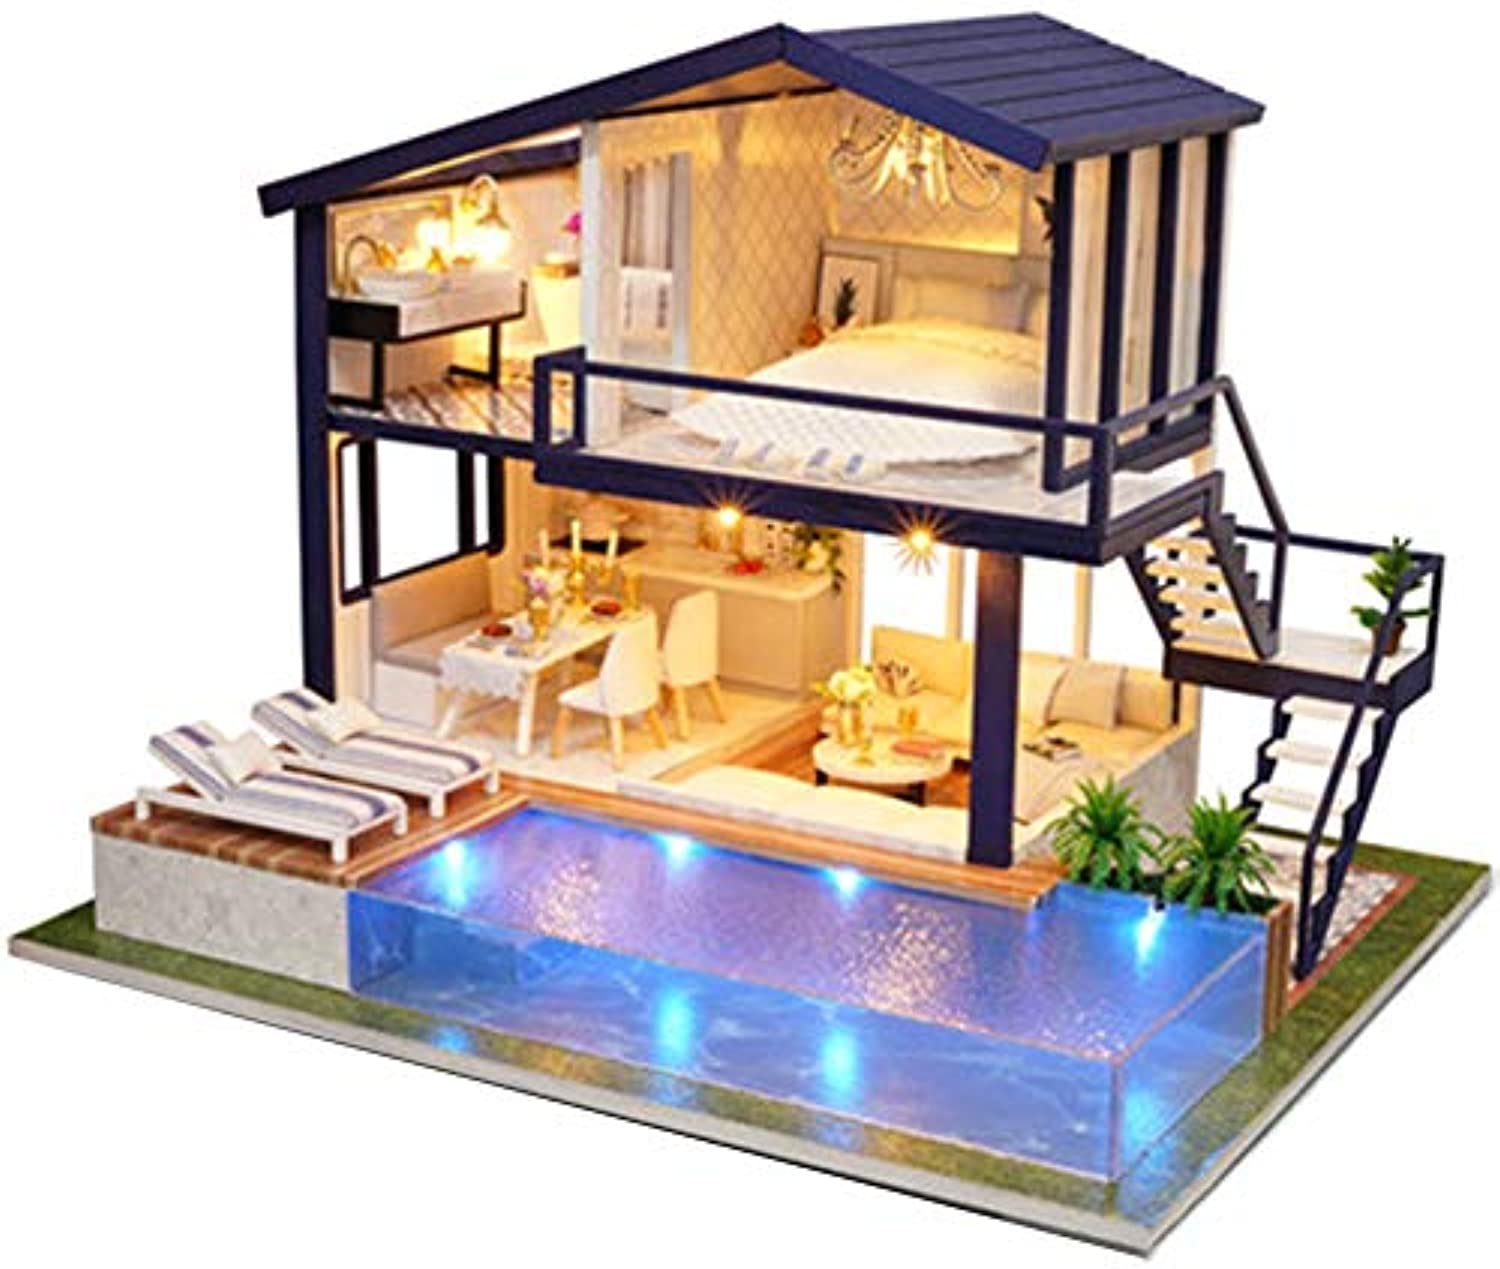 Gracorgzjs Wooden Time Apartment DIY Miniature Dollhouse Model with Music Assembly Toys